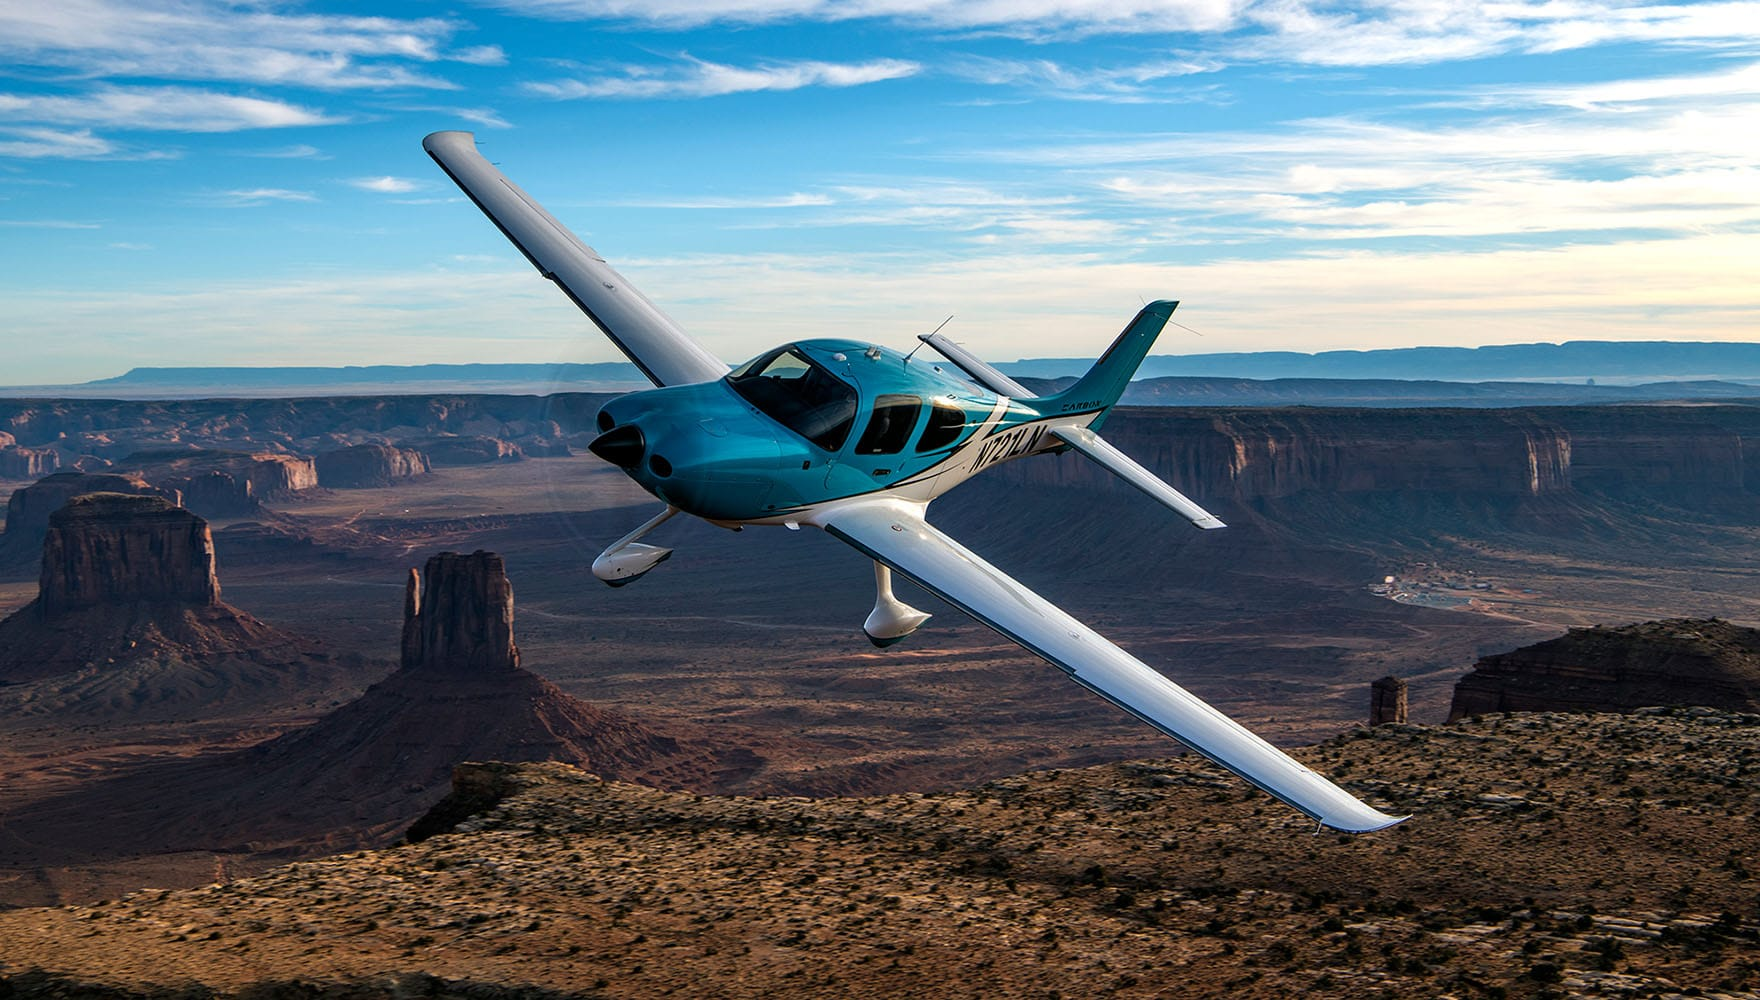 Cirrus Aircraft Continues Expansion with New Flight Training Facility and Innovation Centers in Arizona and Texas